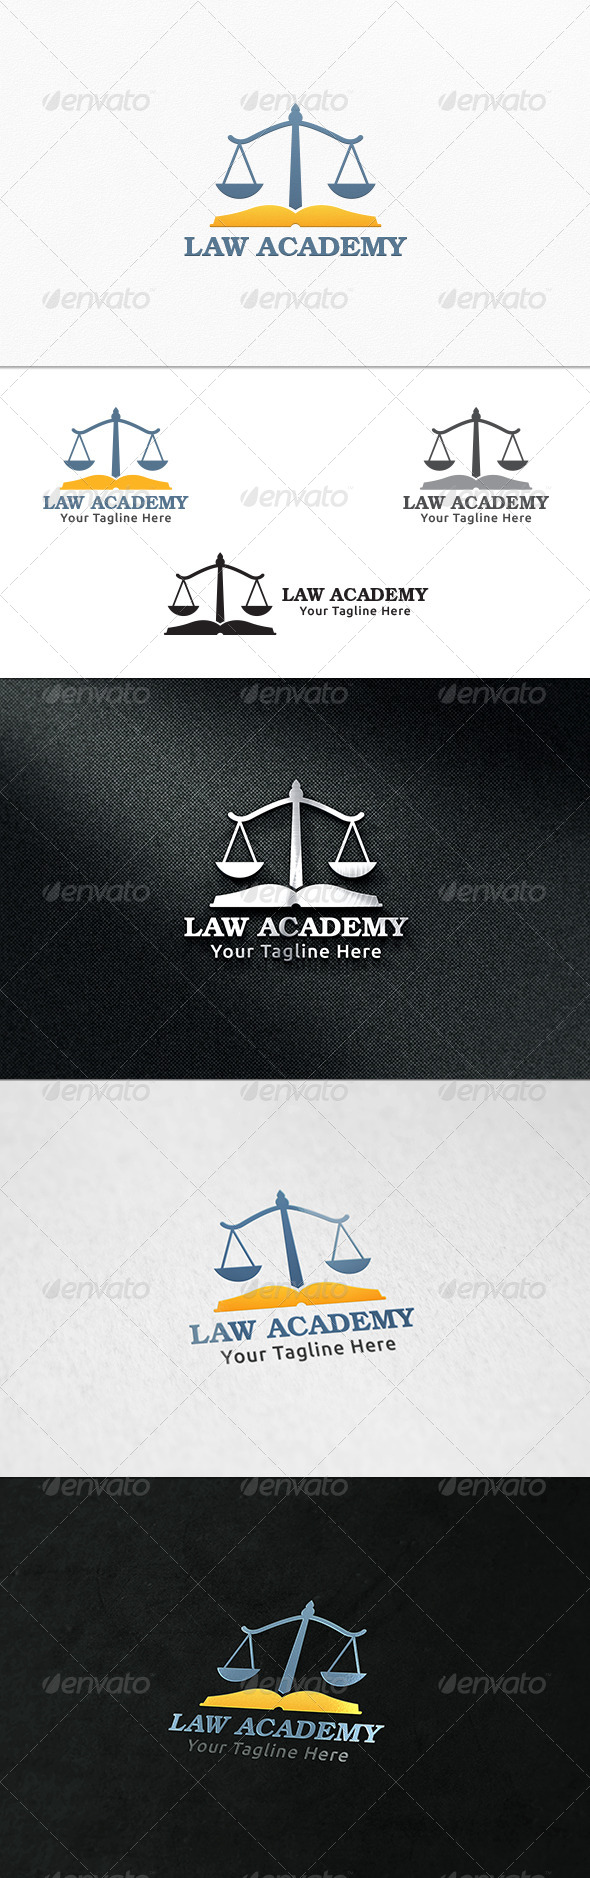 GraphicRiver Law Academy Logo Template 7799441